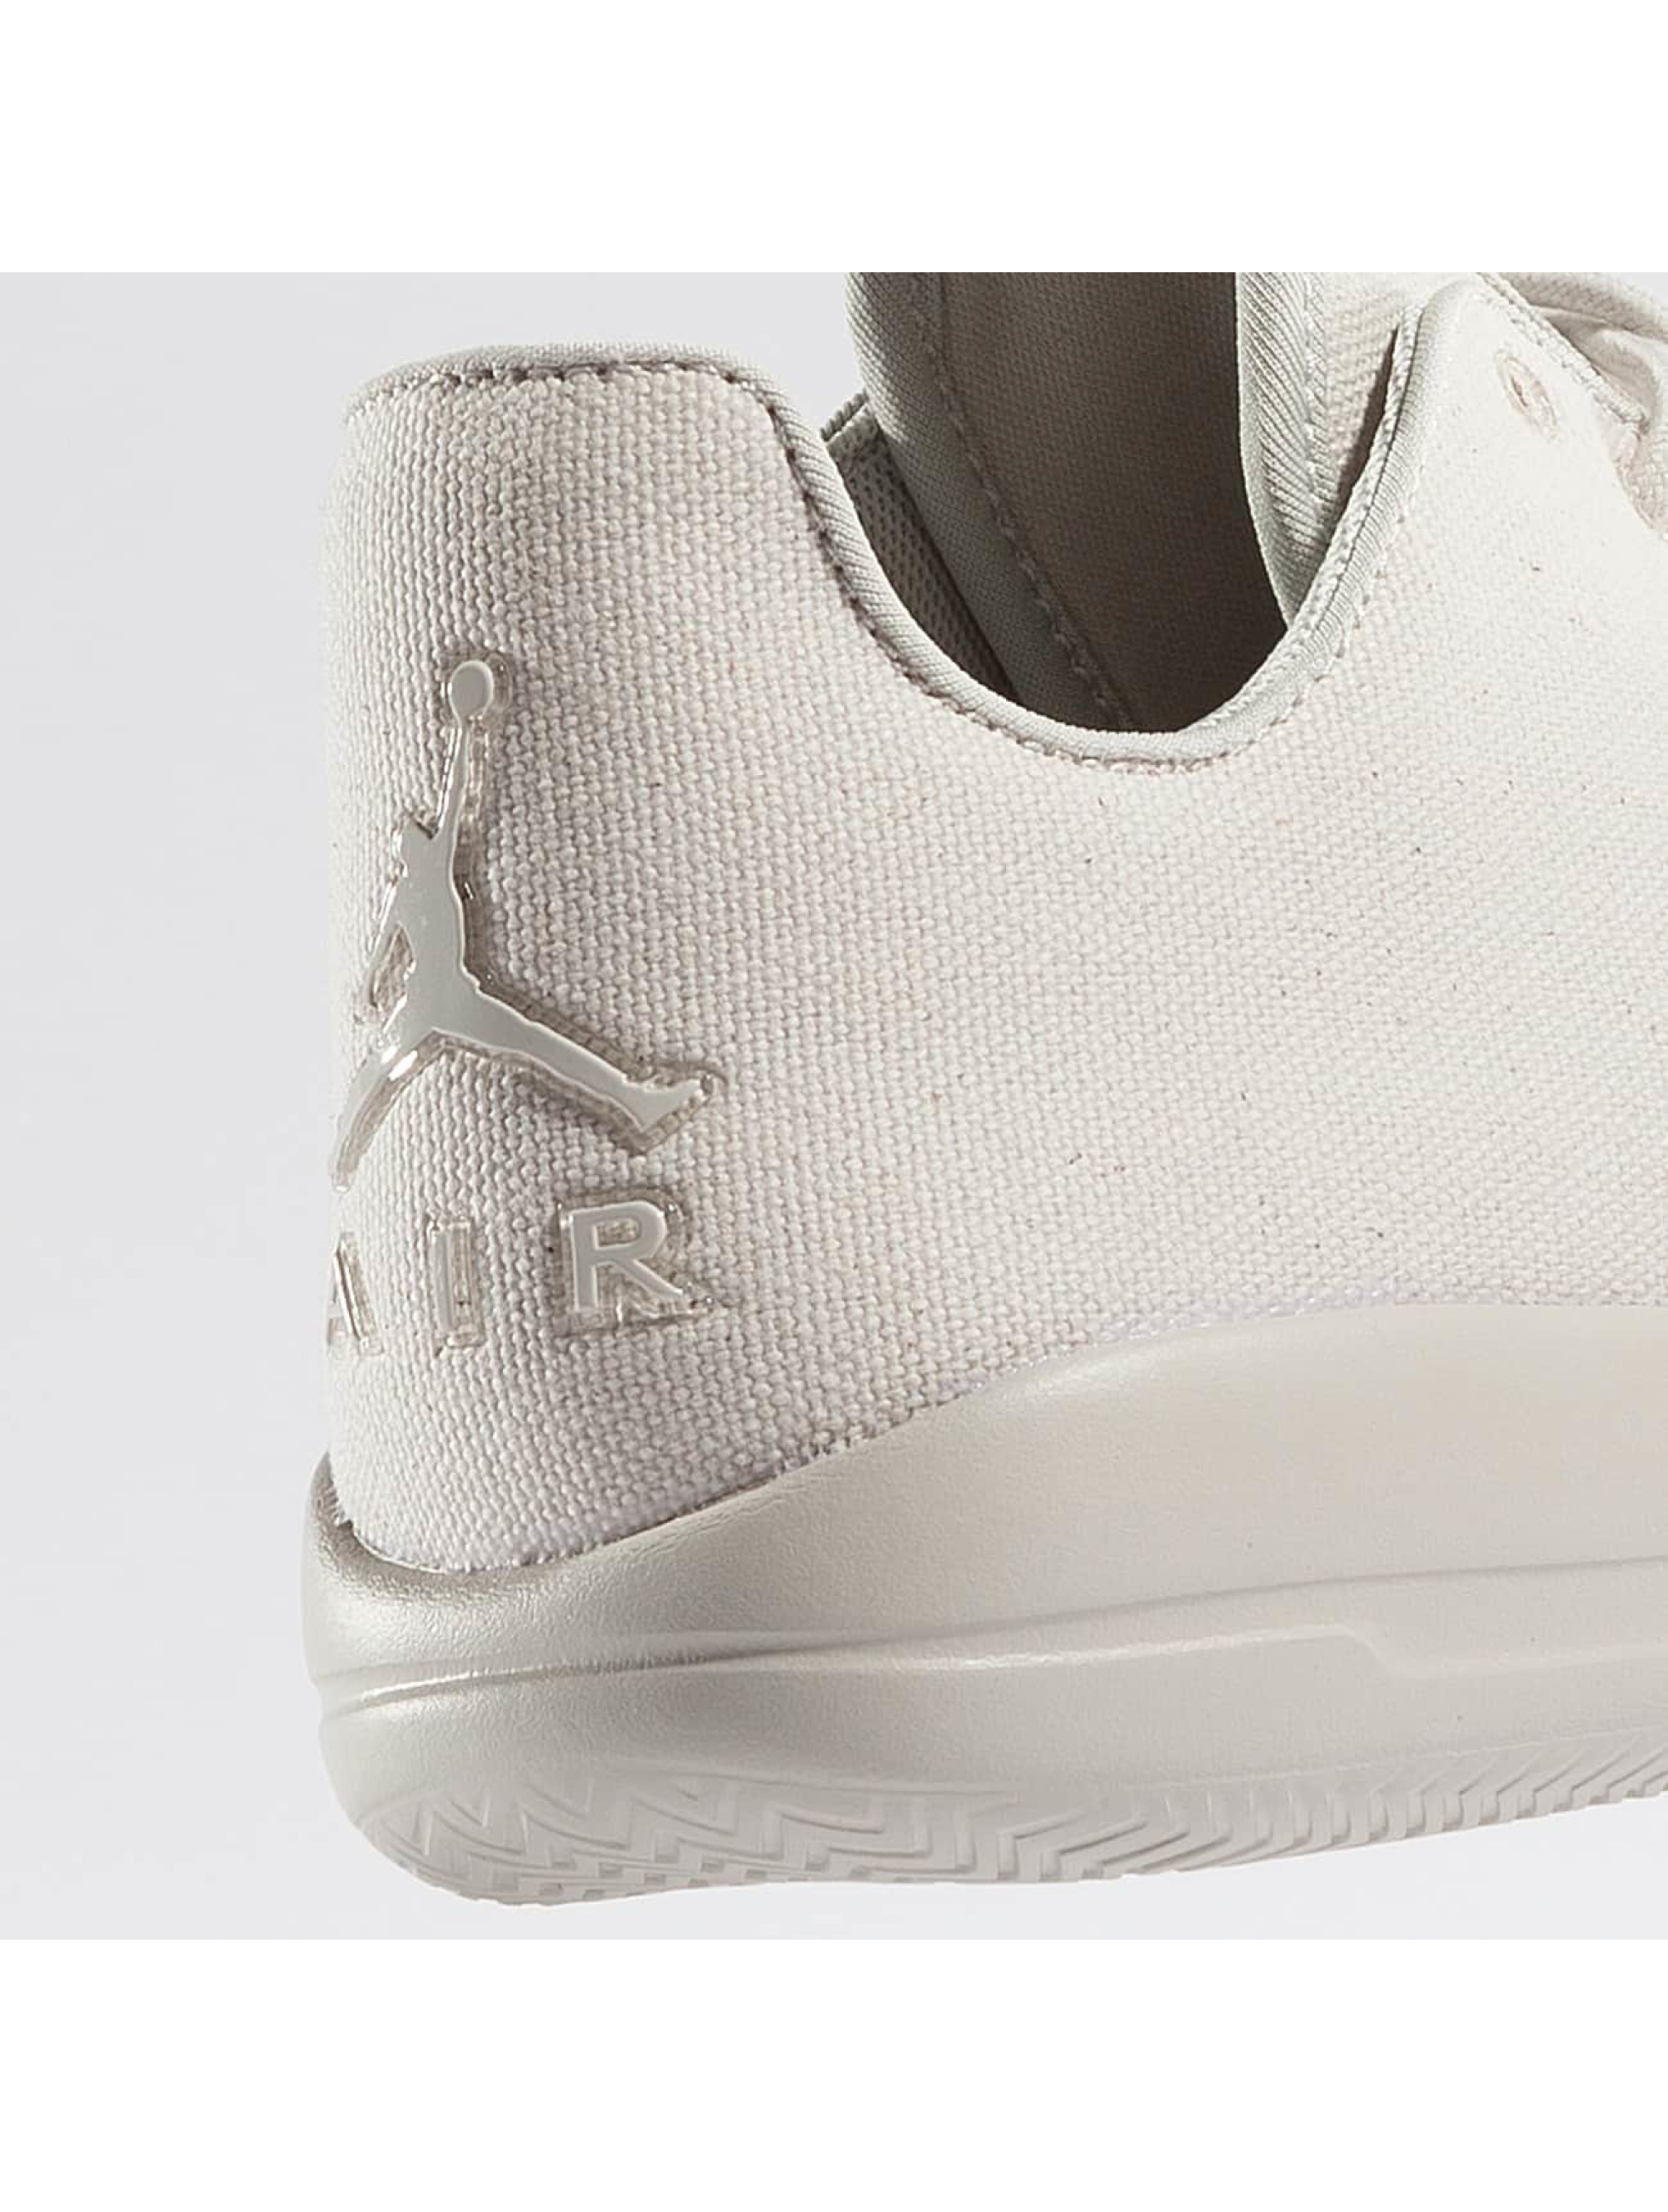 Jordan Sneakers Eclipse Light Bone beige